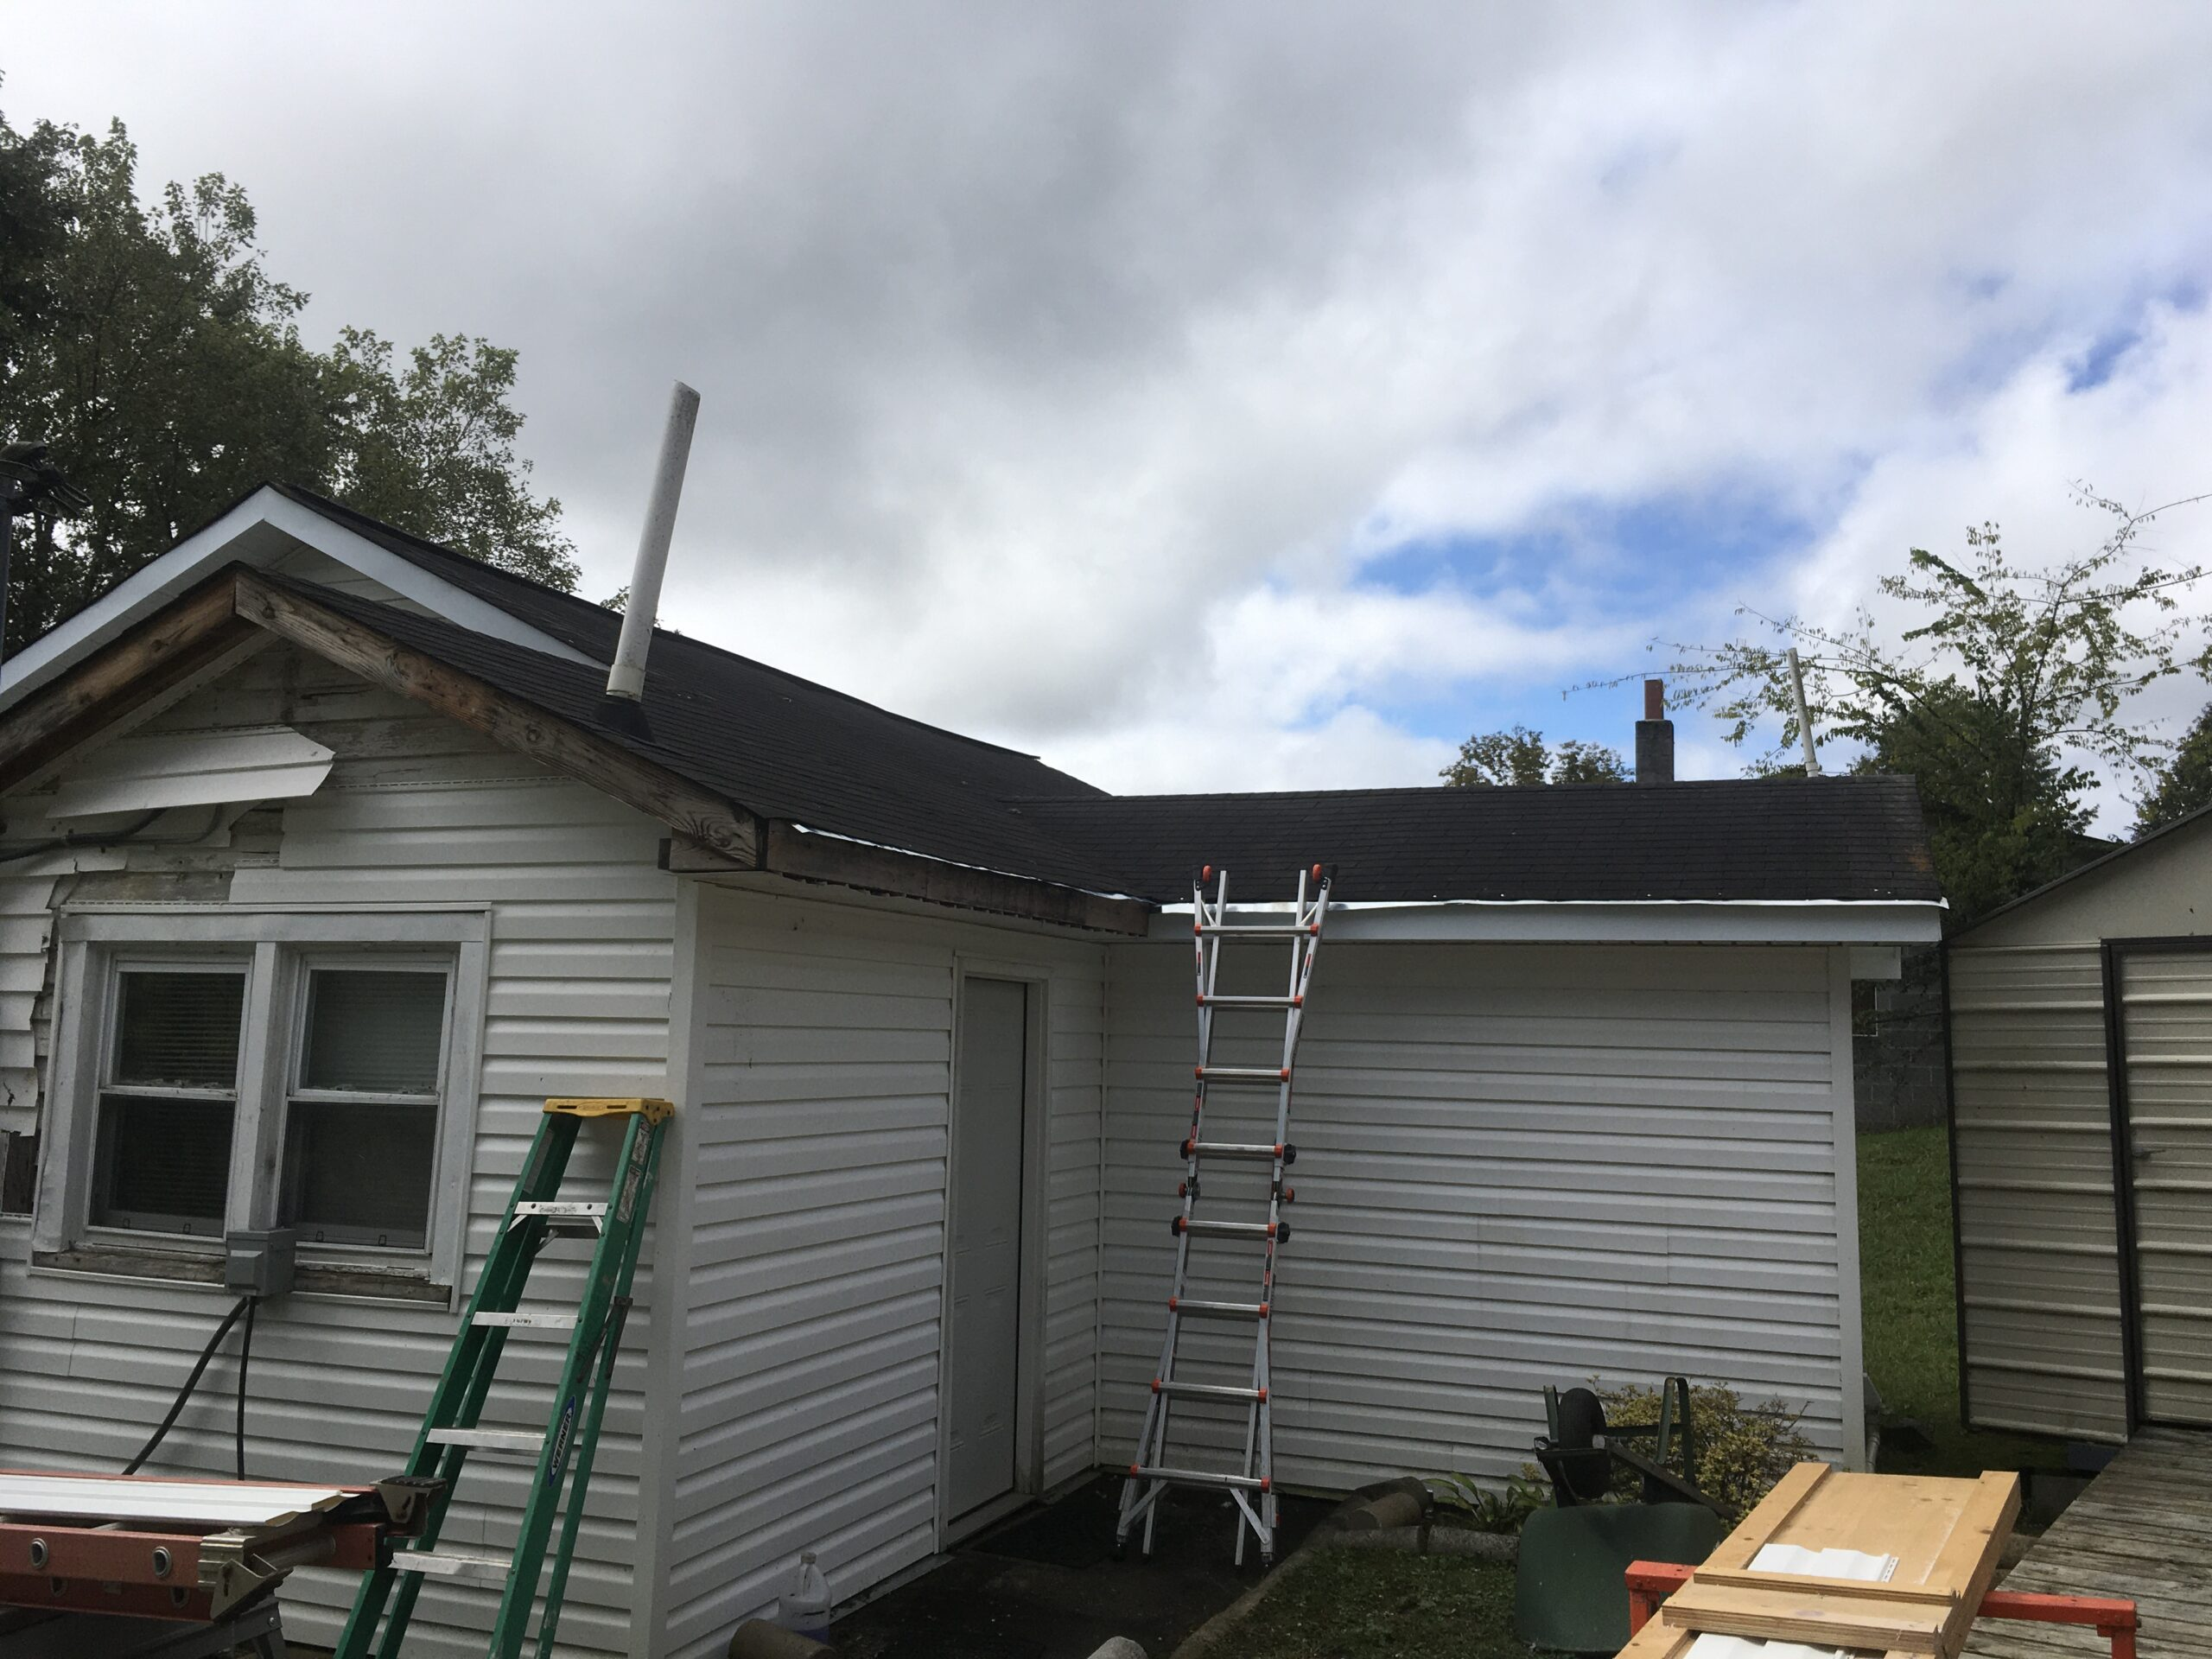 This is a picture of an old roof that needs gutters